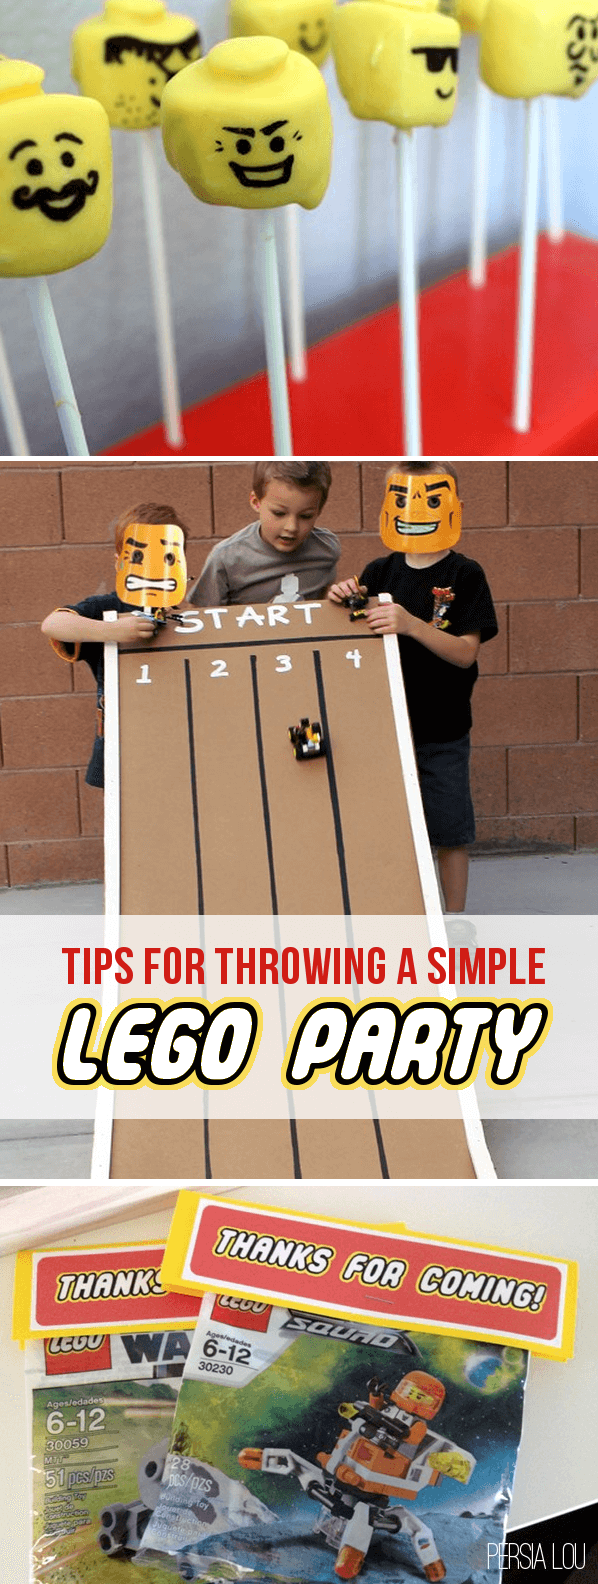 tips-for-throwing-a-simple-lego-party